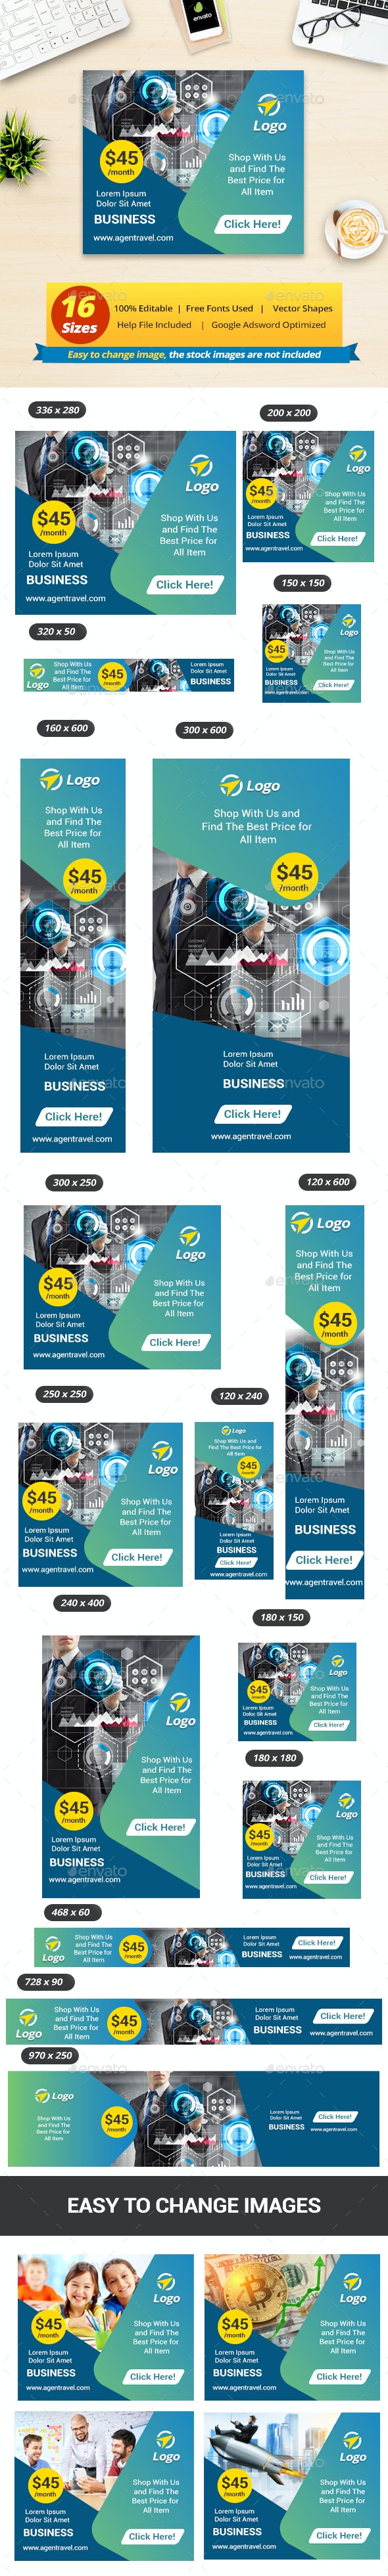 Multipurpose Business Banner Ads Template - Banners & Ads Web Elements